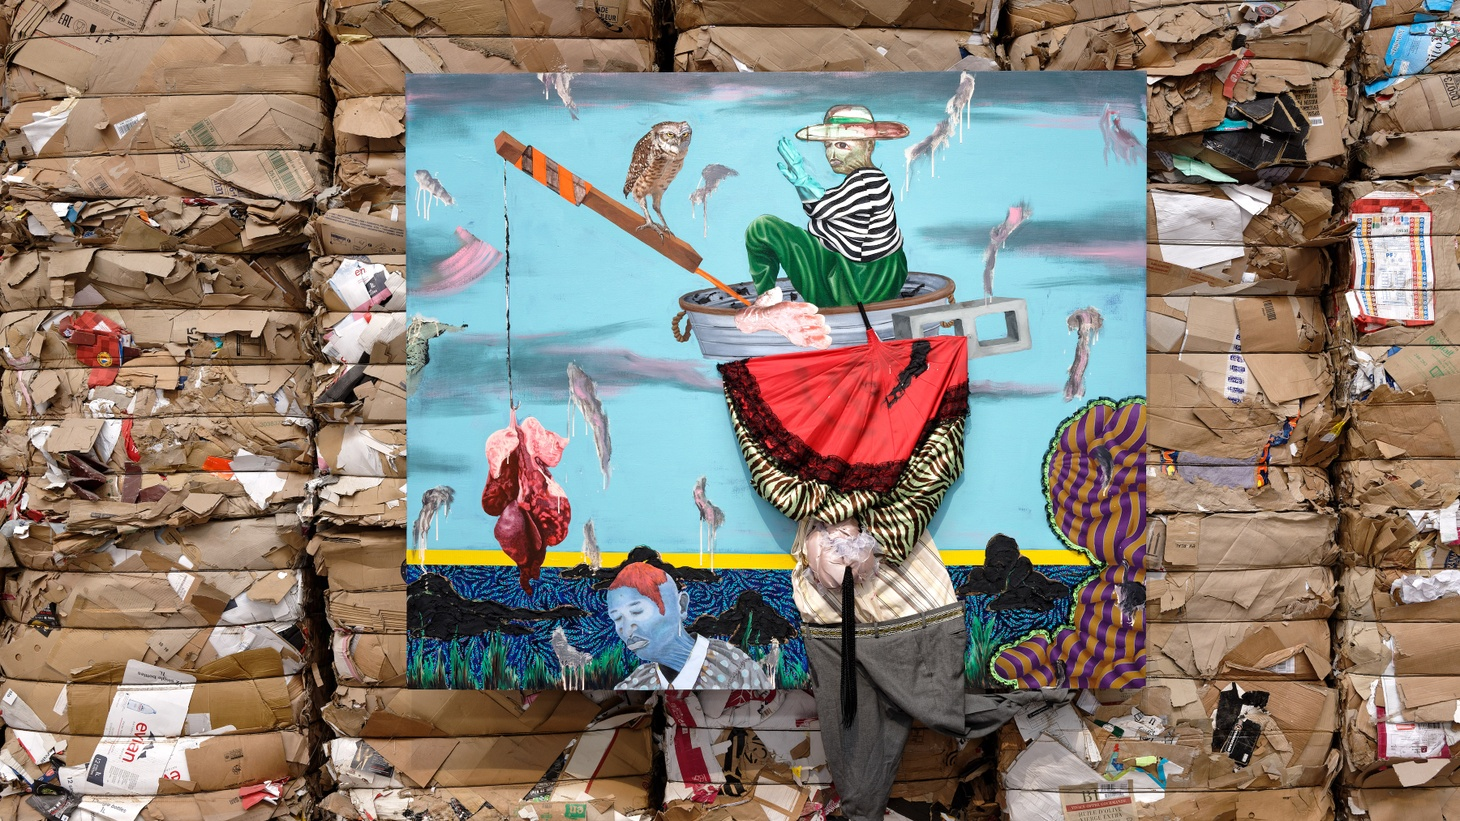 """Simphiwe Ndzube, """"In the Land of the Blind the One Eyed Man is King?"""" (2019) in """"Where Water Comes Together With Other Water,"""" The 15th Lyon Biennale, Lyon, France, Installation View."""